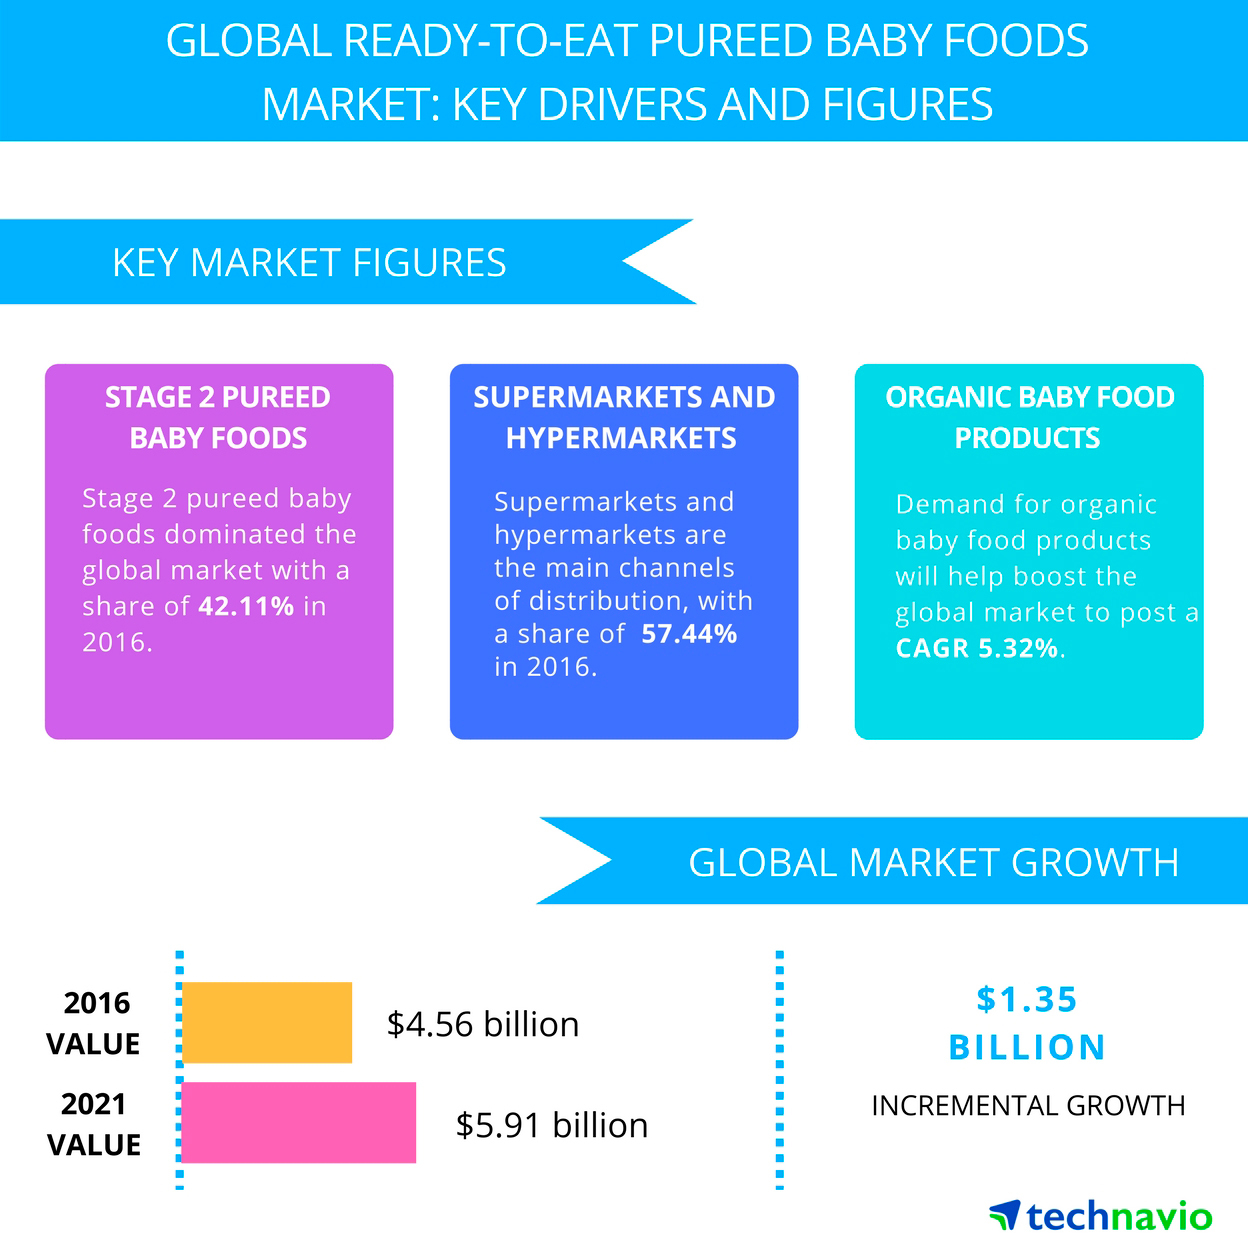 Technavio has published a new report on the global ready-to-eat pureed baby foods market from 2017-2021. (Graphic: Business Wire)